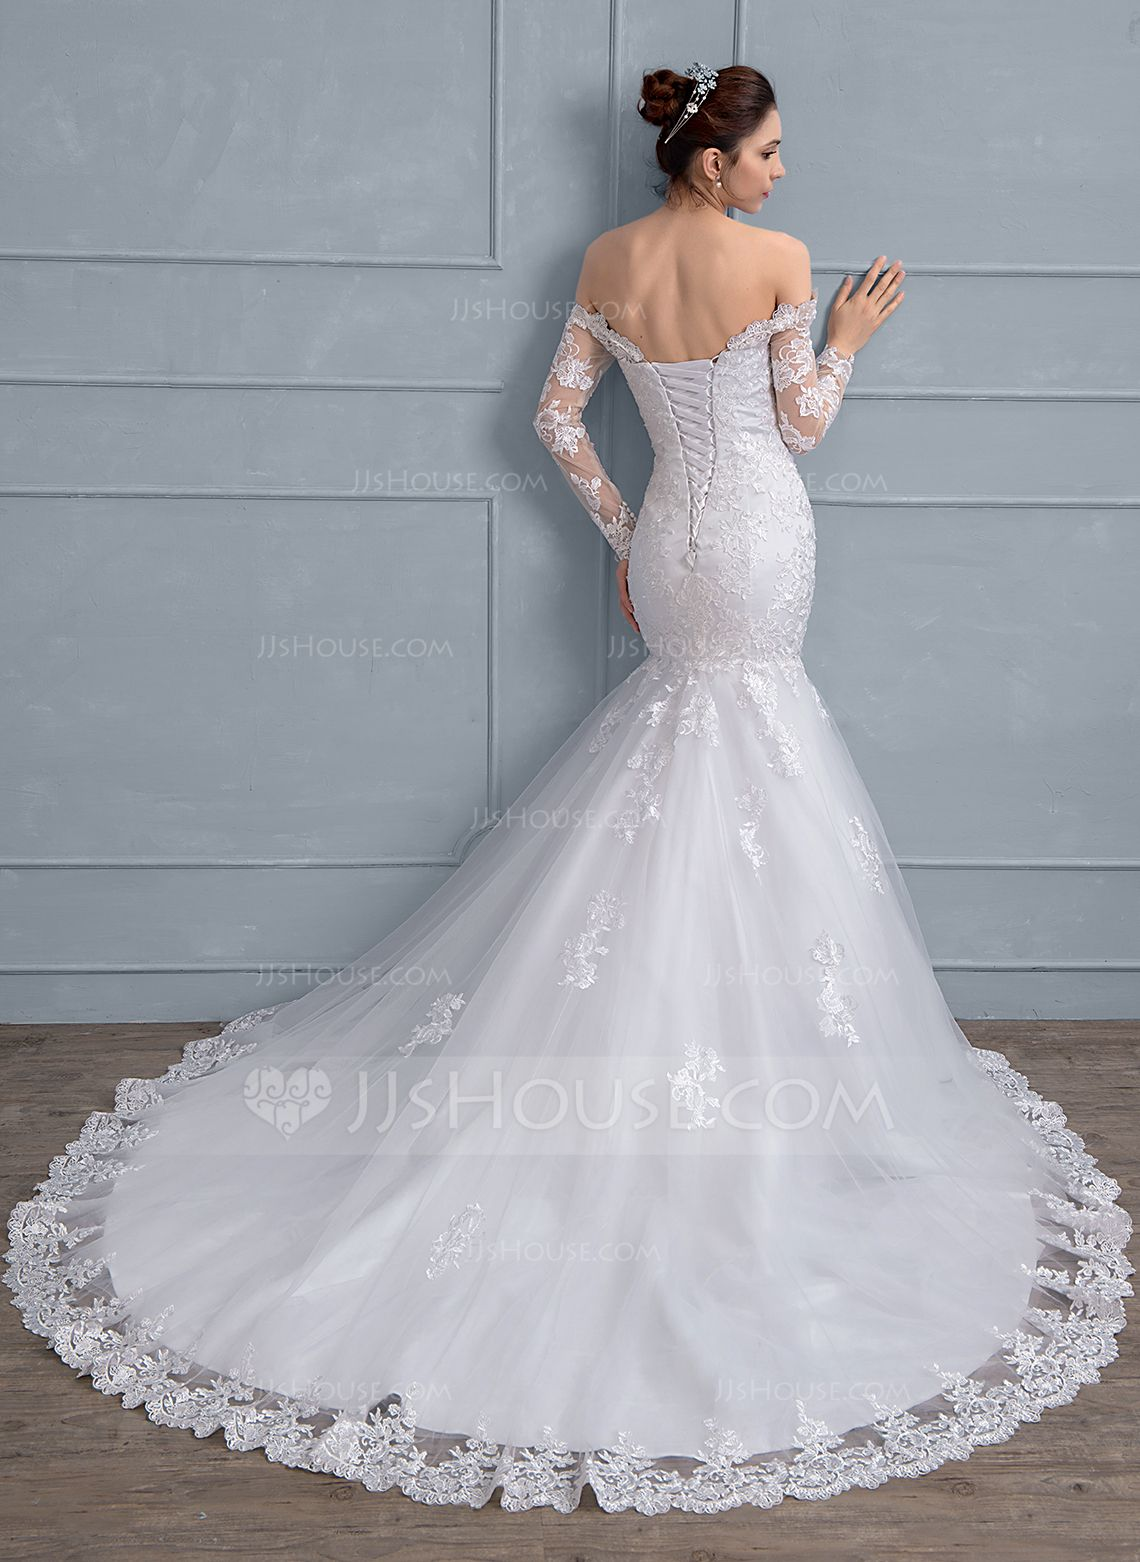 Us 315 00 Trumpet Mermaid Off The Shoulder Chapel Train Tulle Lace Wedding Dress With Beading Sequins Jj S House Wedding Dresses Celebrity Wedding Dresses Unique Wedding Gowns [ 1562 x 1140 Pixel ]